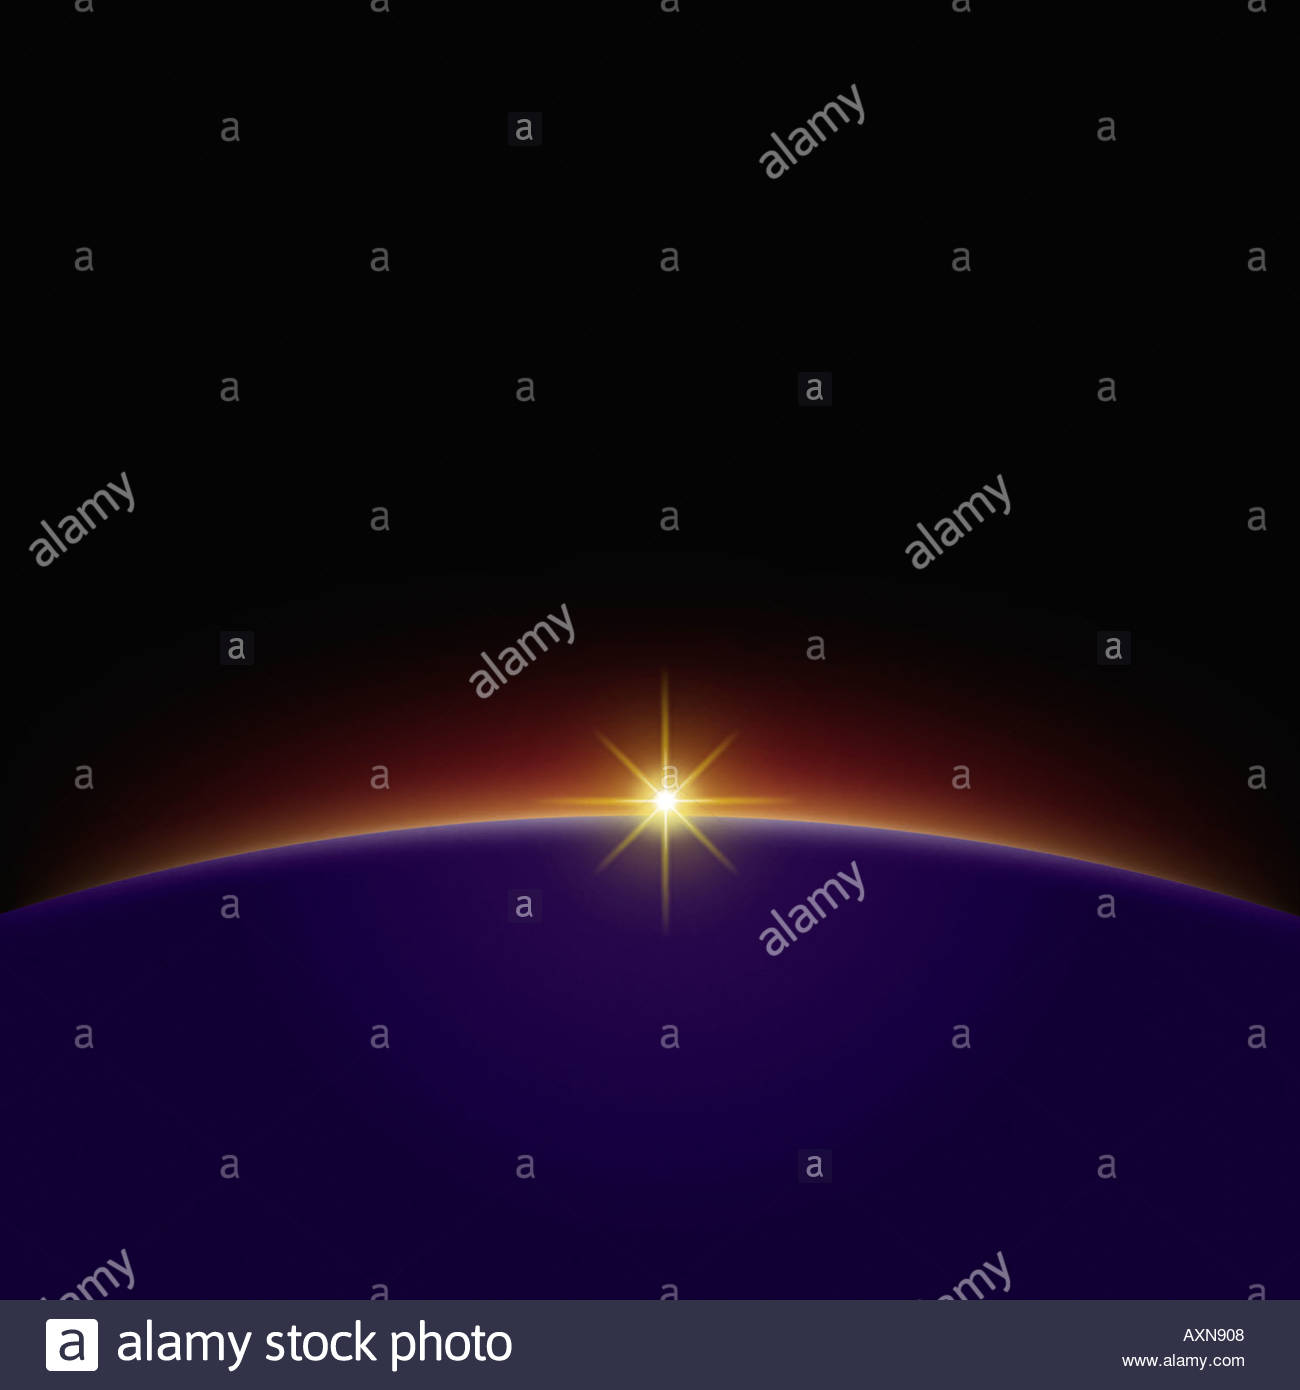 illustration-of-dawn-high-above-the-eart